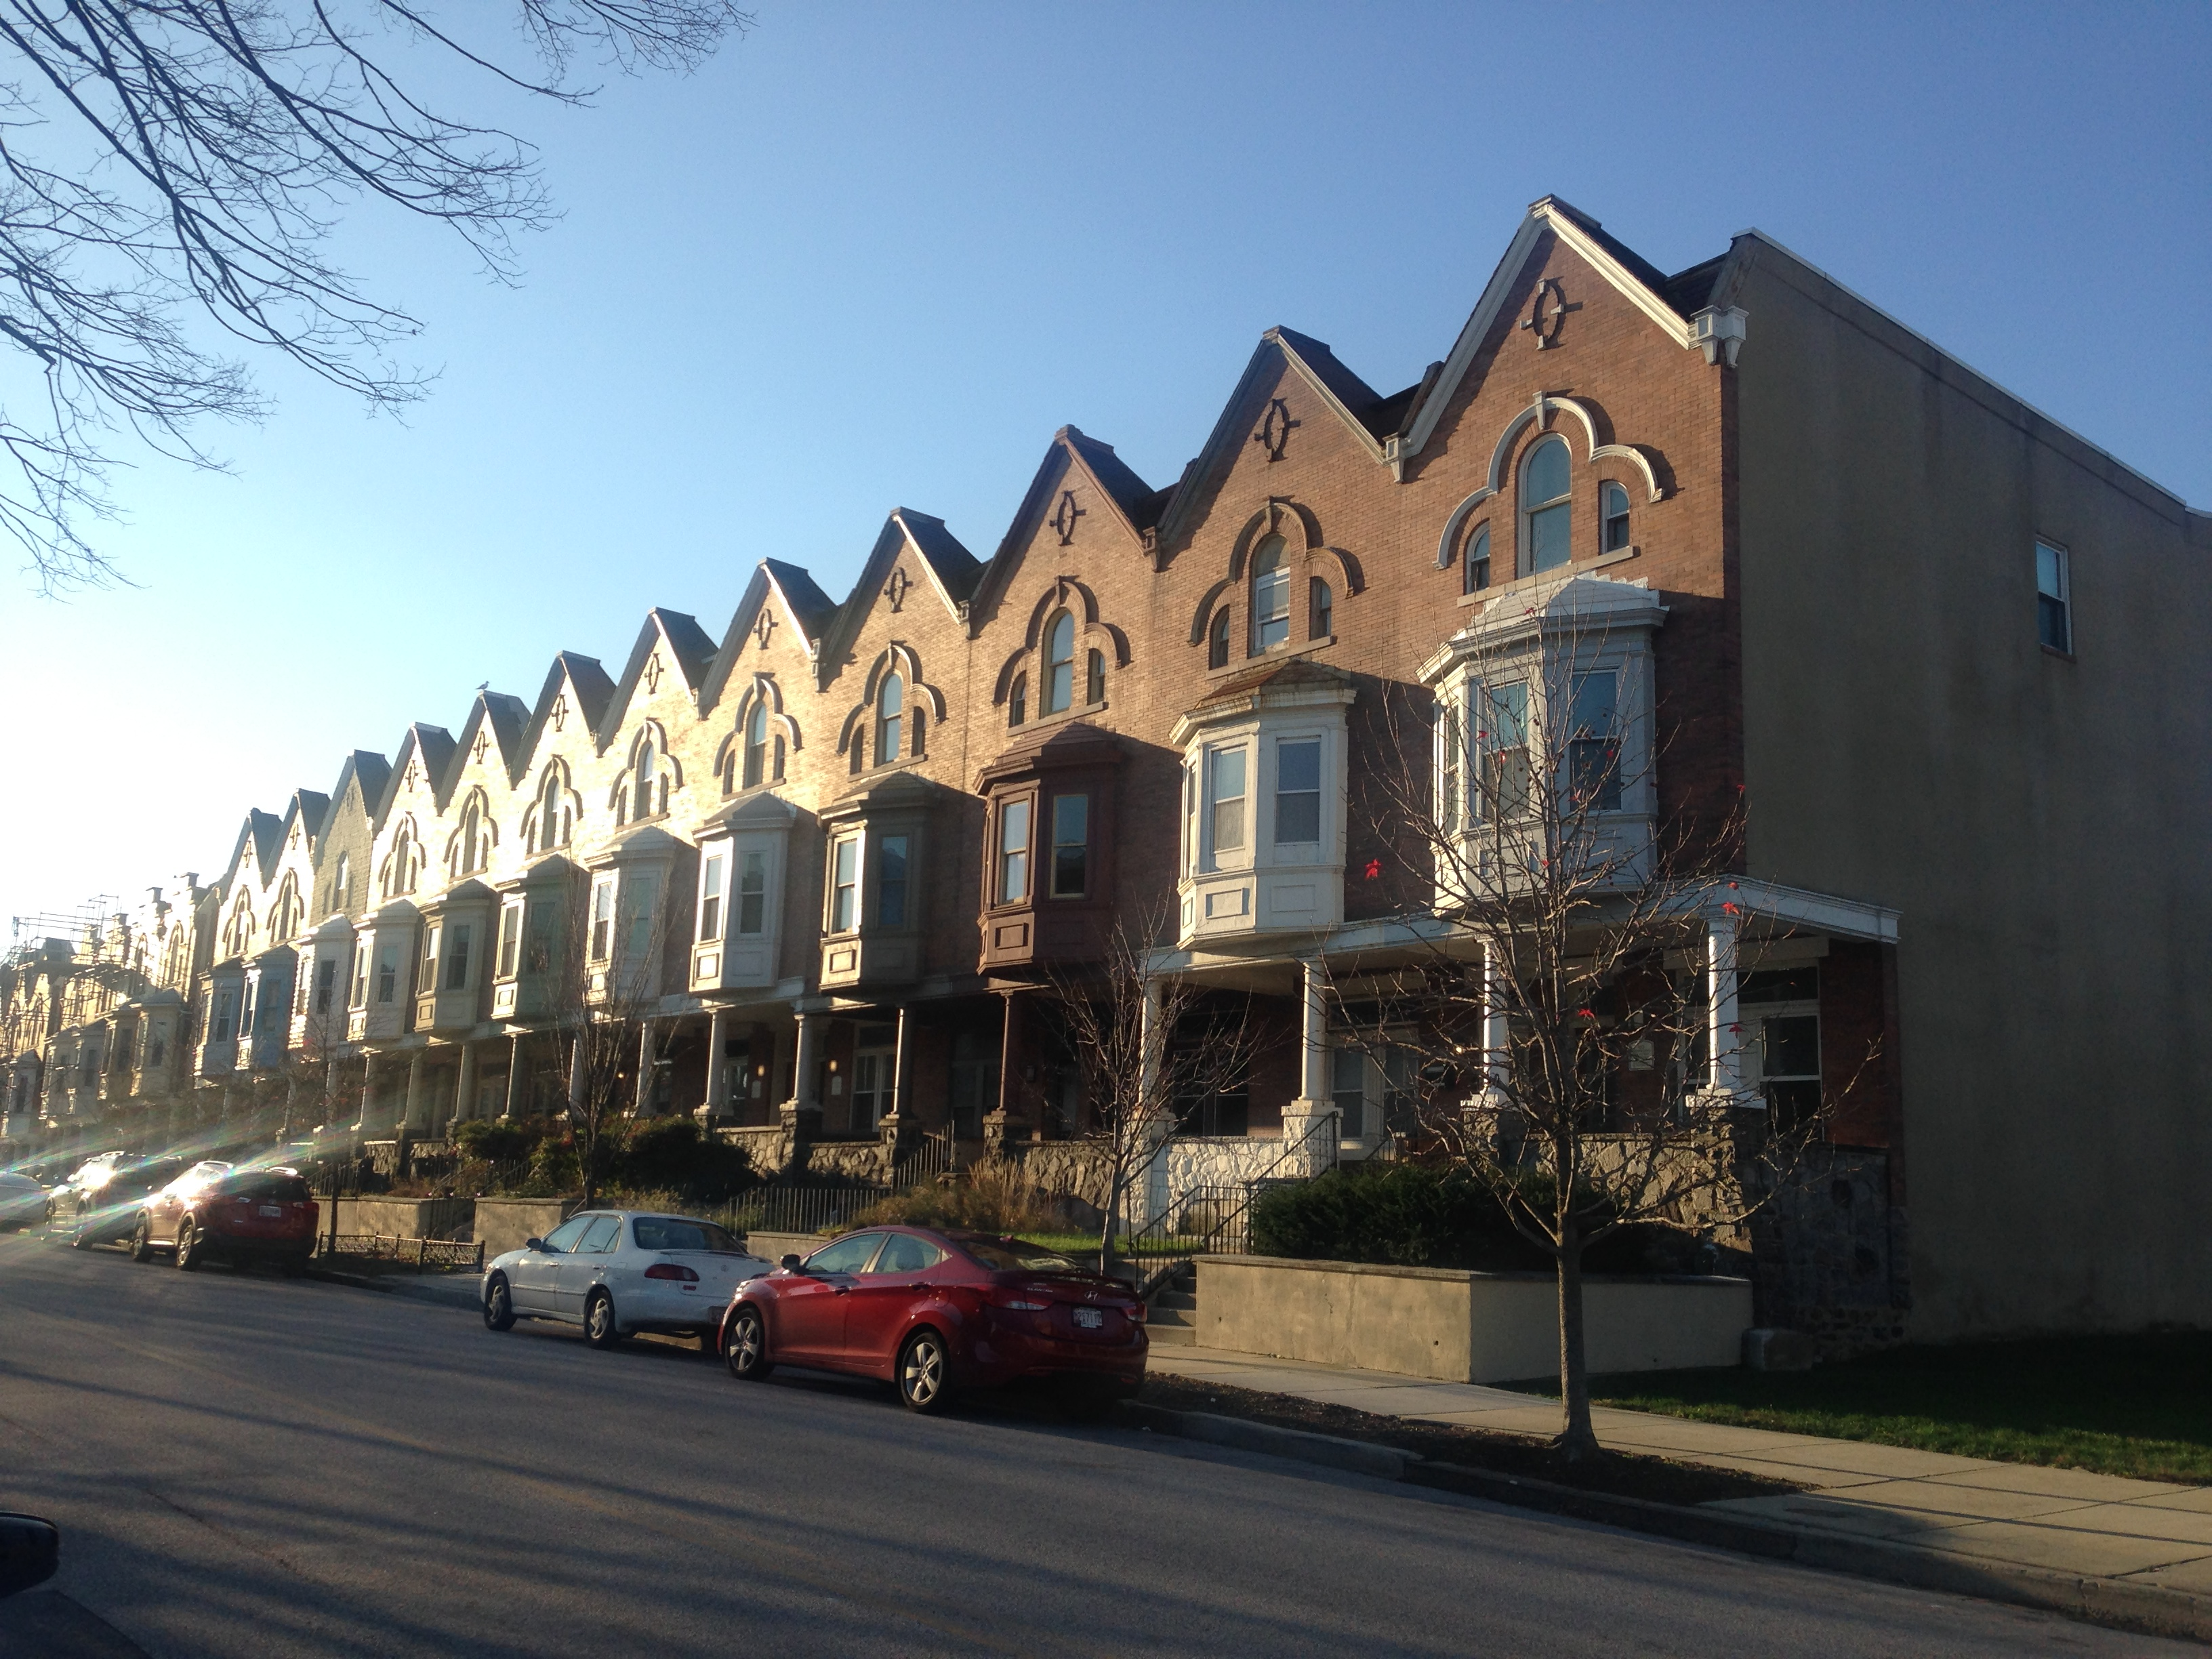 Image of rowhomes in Charles Village